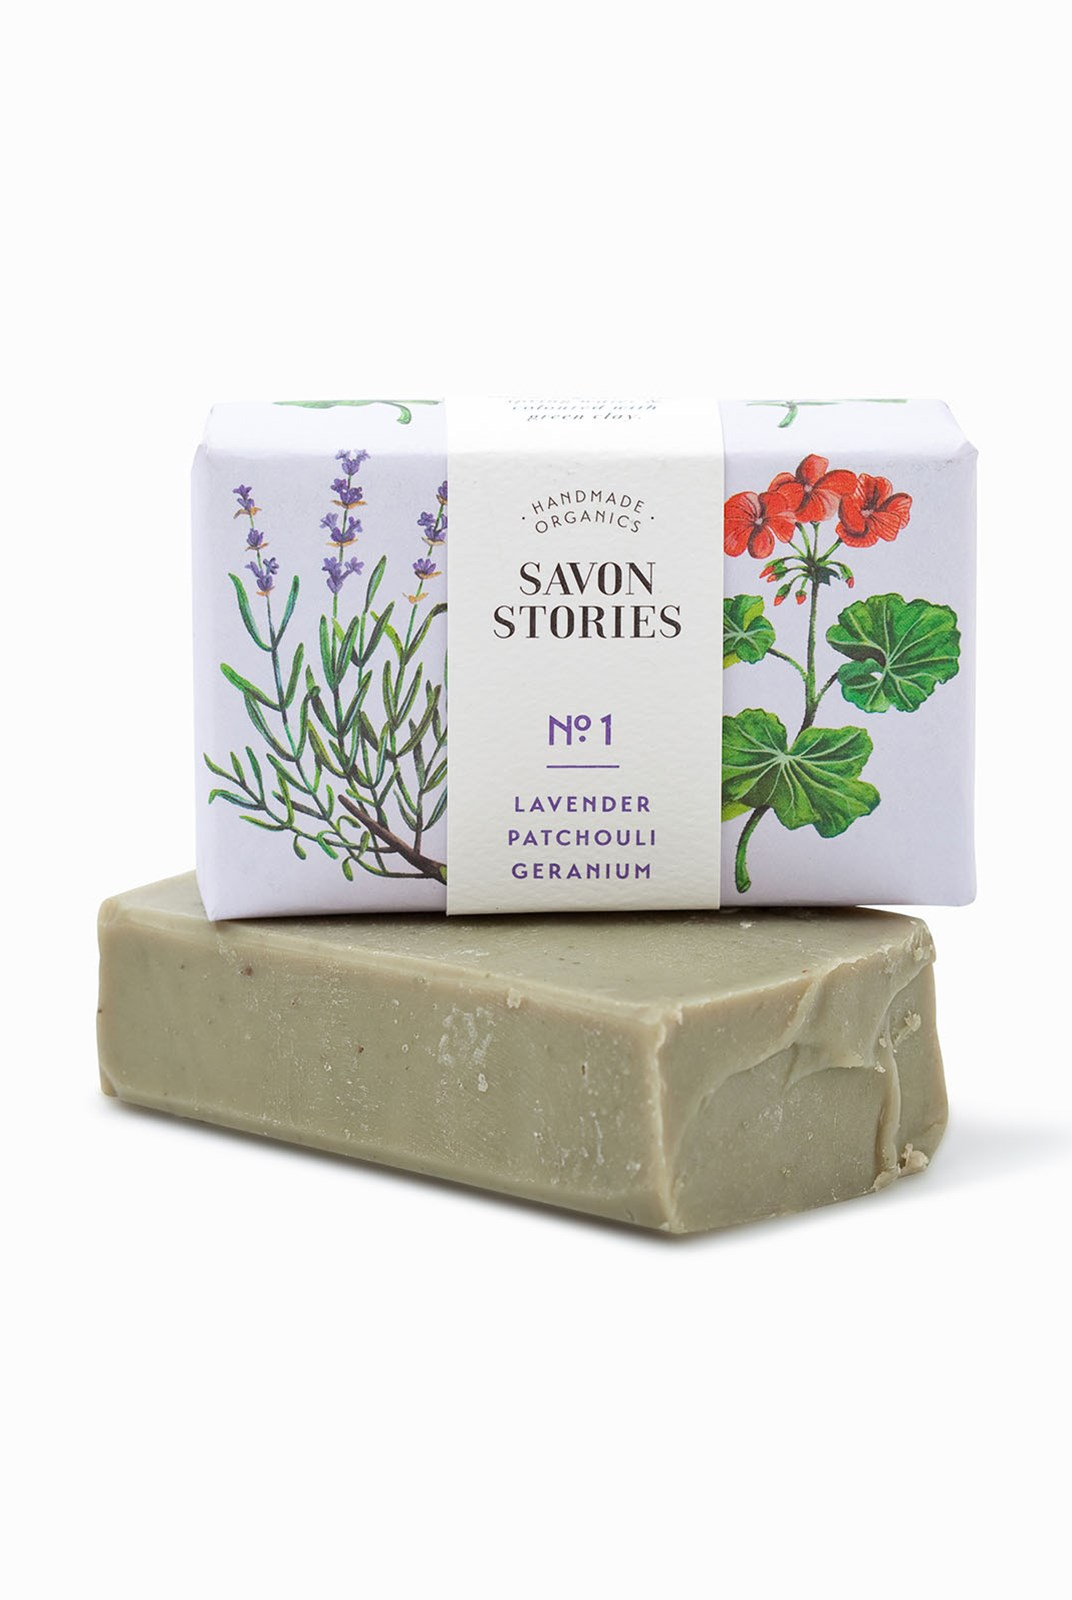 Savon Stories - Organic Soap - 105g - Green Clay